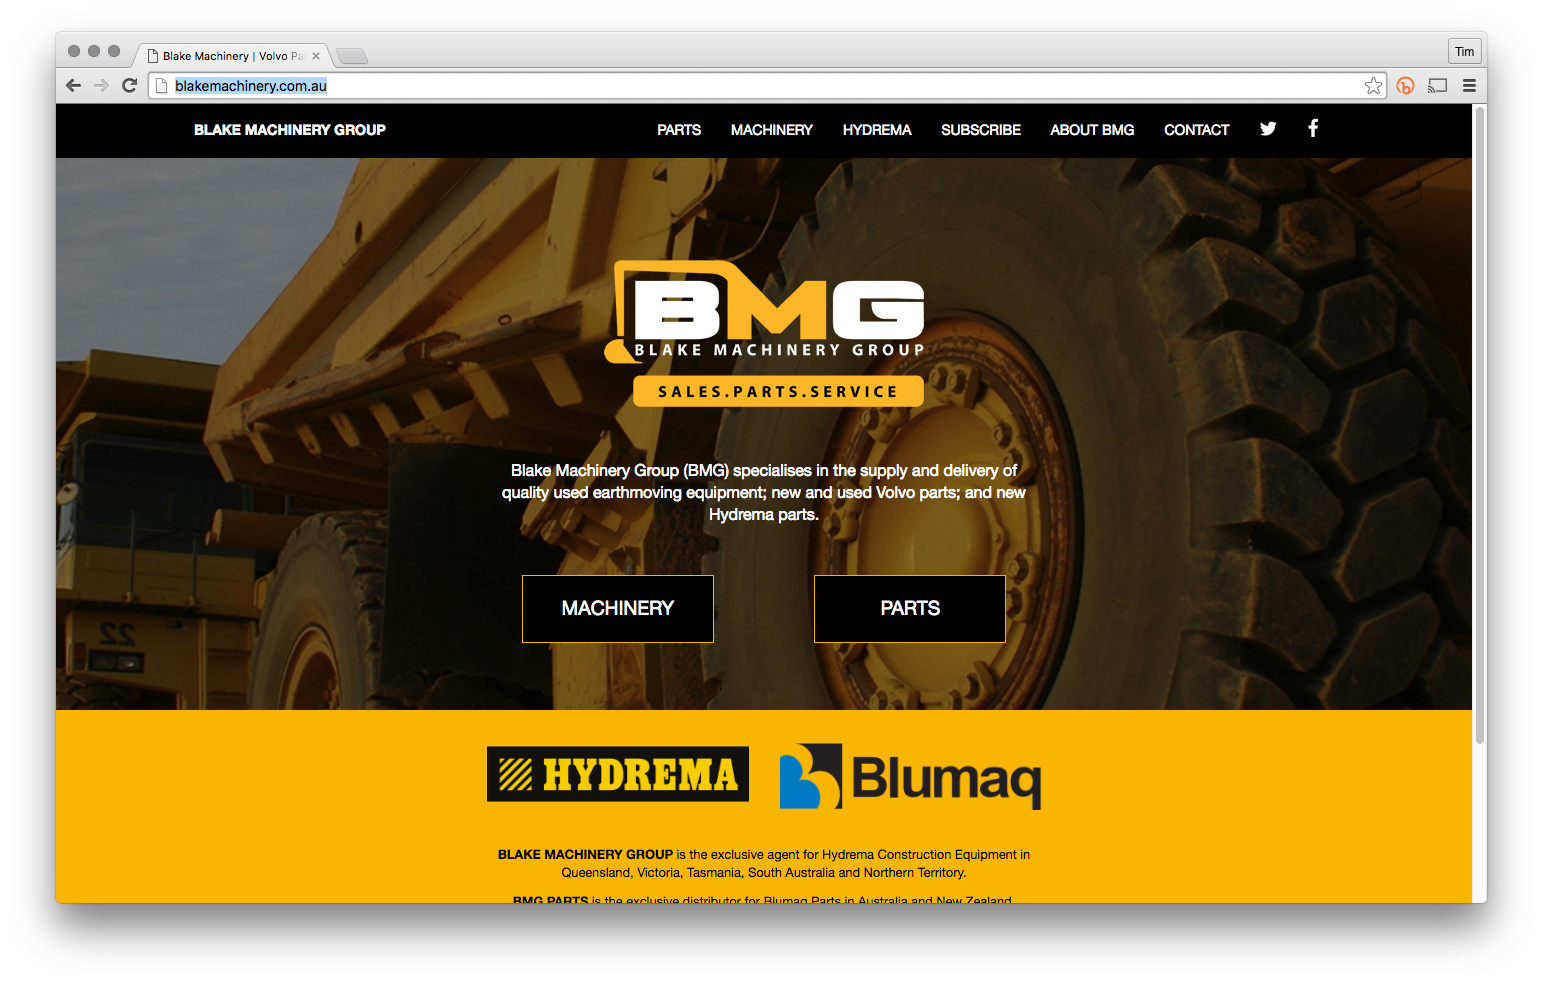 Blake Machinery Group